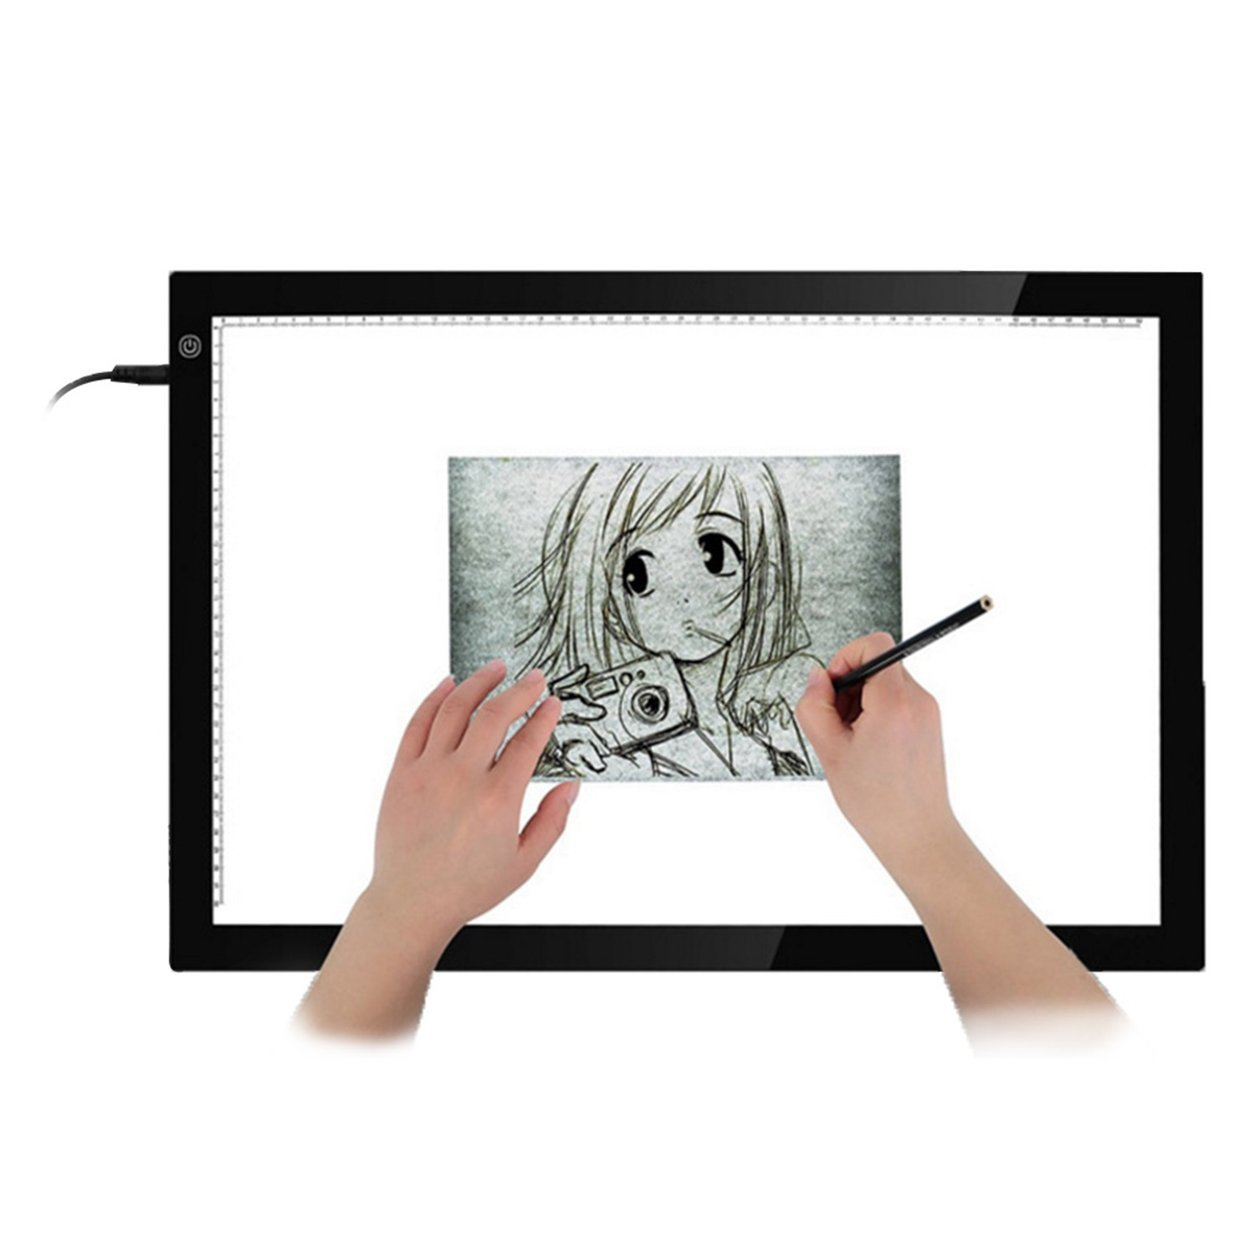 A3 Portable LED Drawing Board Protezione occhi Touch Dimmable Tracing Table Light Pad Box per 2D Animation Sketching, Bianco e nero Dailyinshop